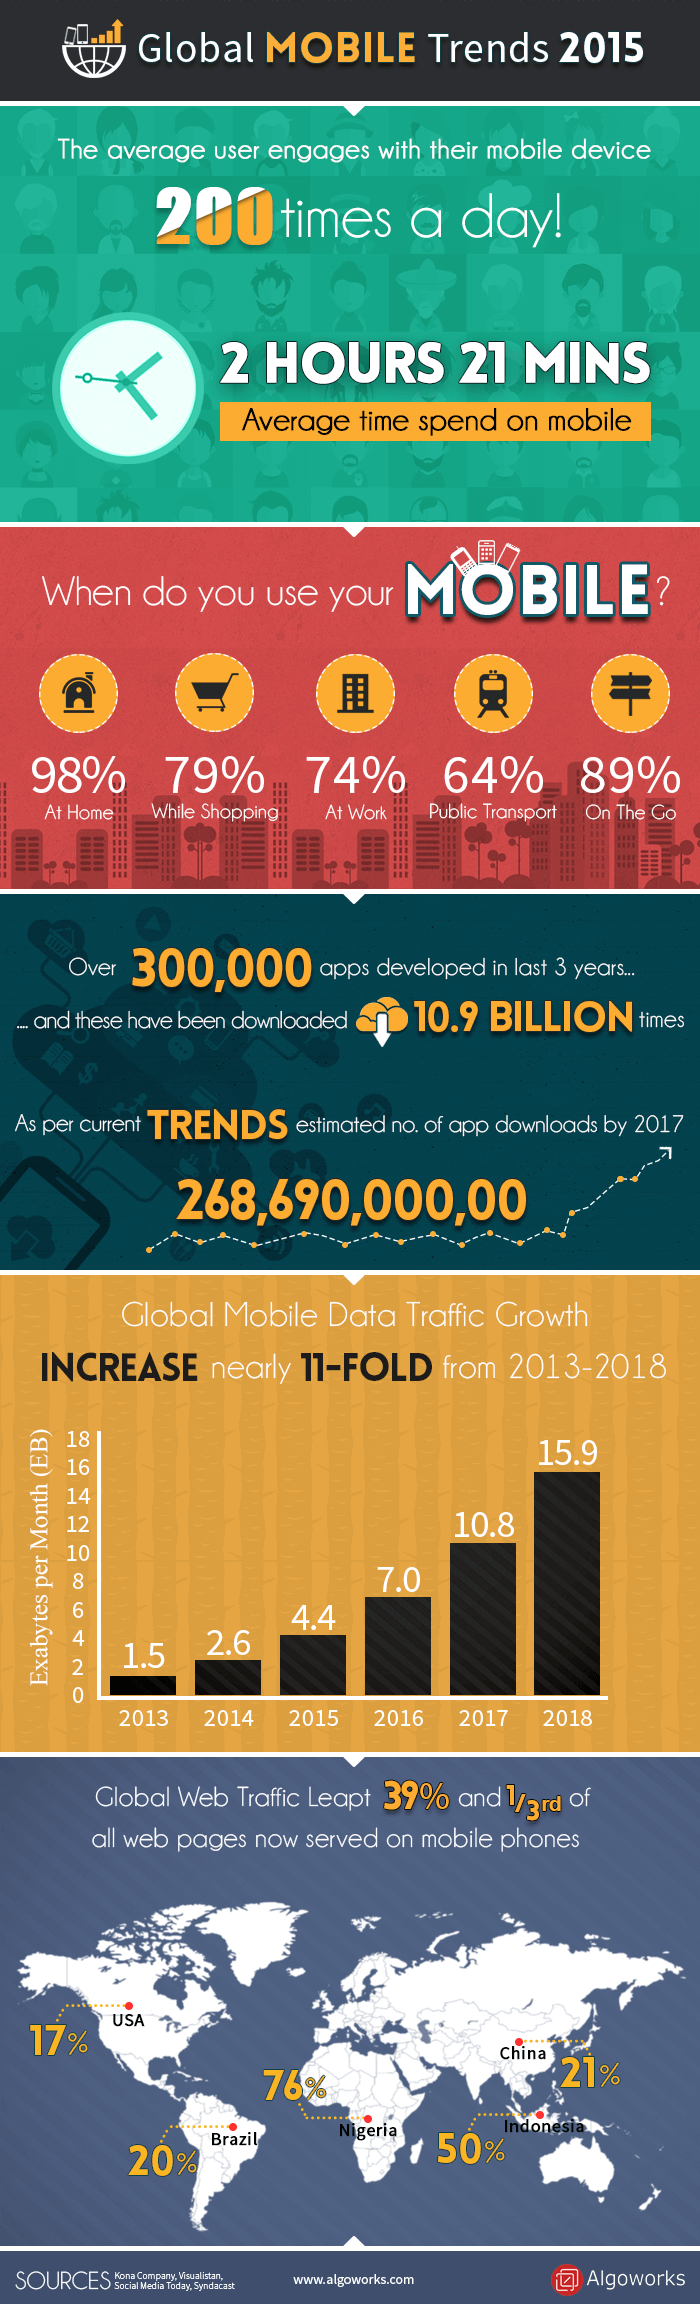 Global Mobile Trends 2015 | Infographic